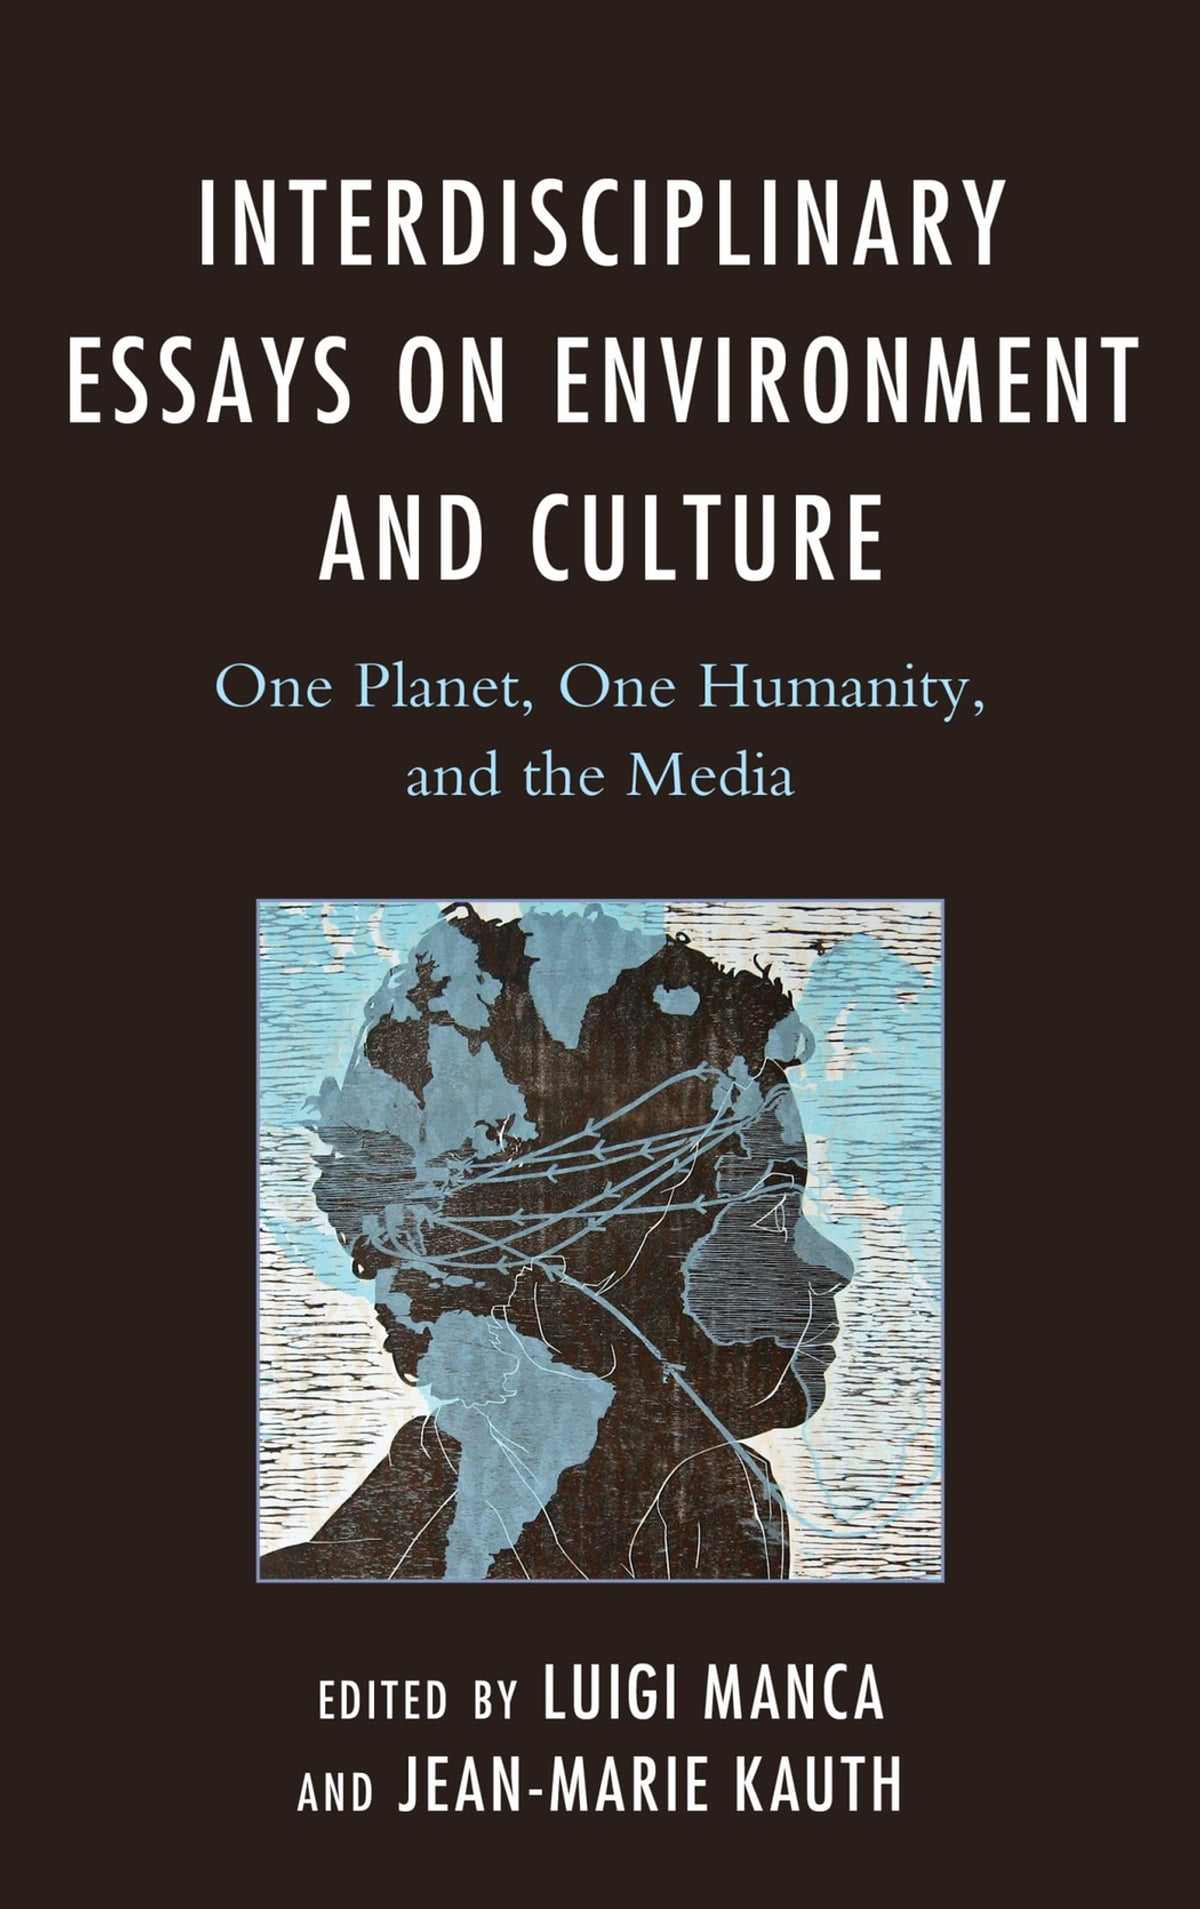 interdisciplinary essays on environment and culture ebook by chris interdisciplinary essays on environment and culture ebook by chris birks 9781498528894 kobo